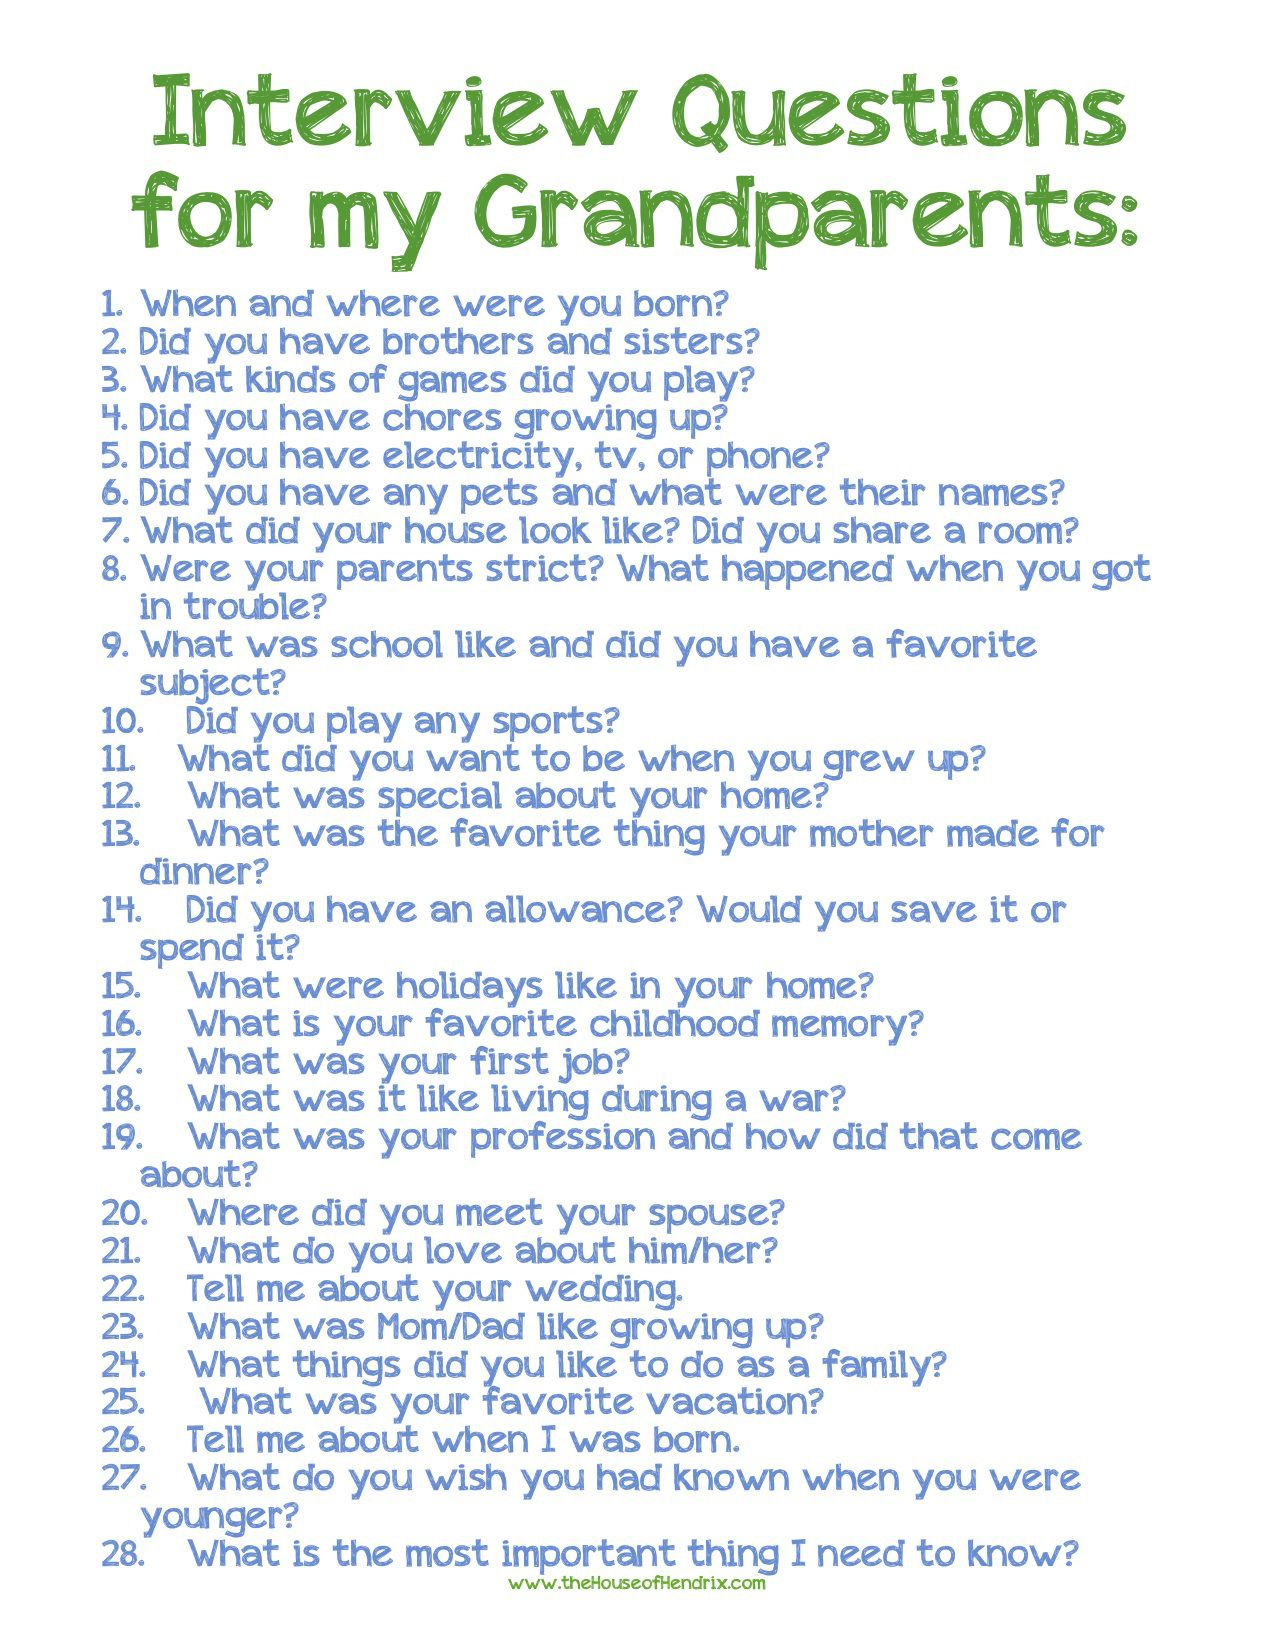 17 best images about grandparents day bingo 17 best images about grandparents day bingo interview questions and pure joy